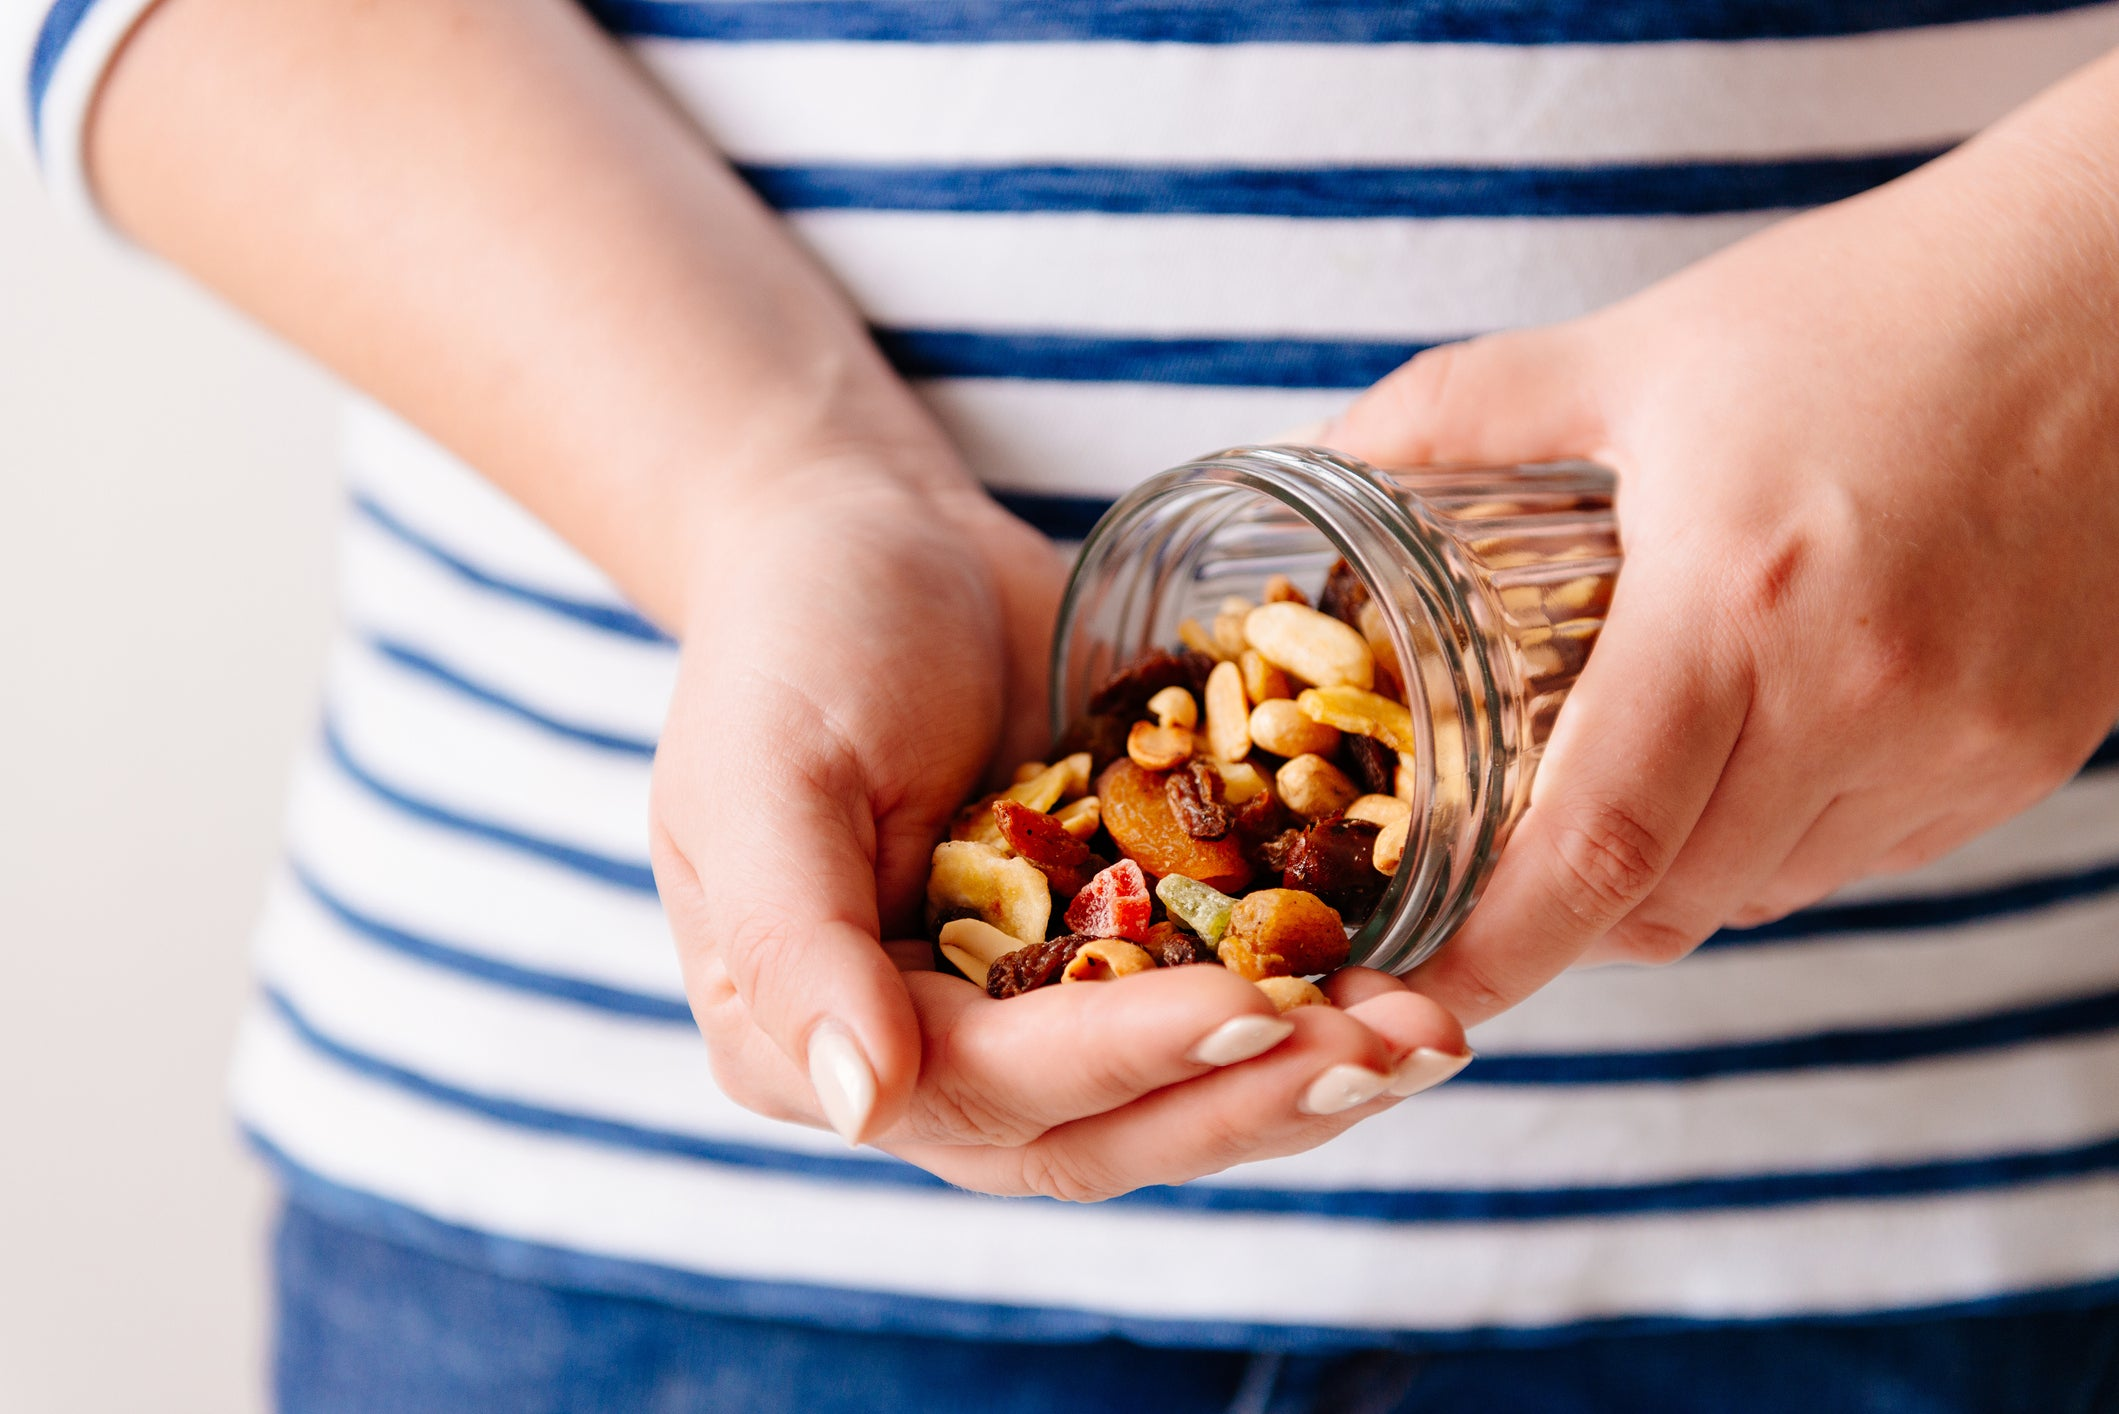 This Nut Company Rewards Shareholders With Special Dividends